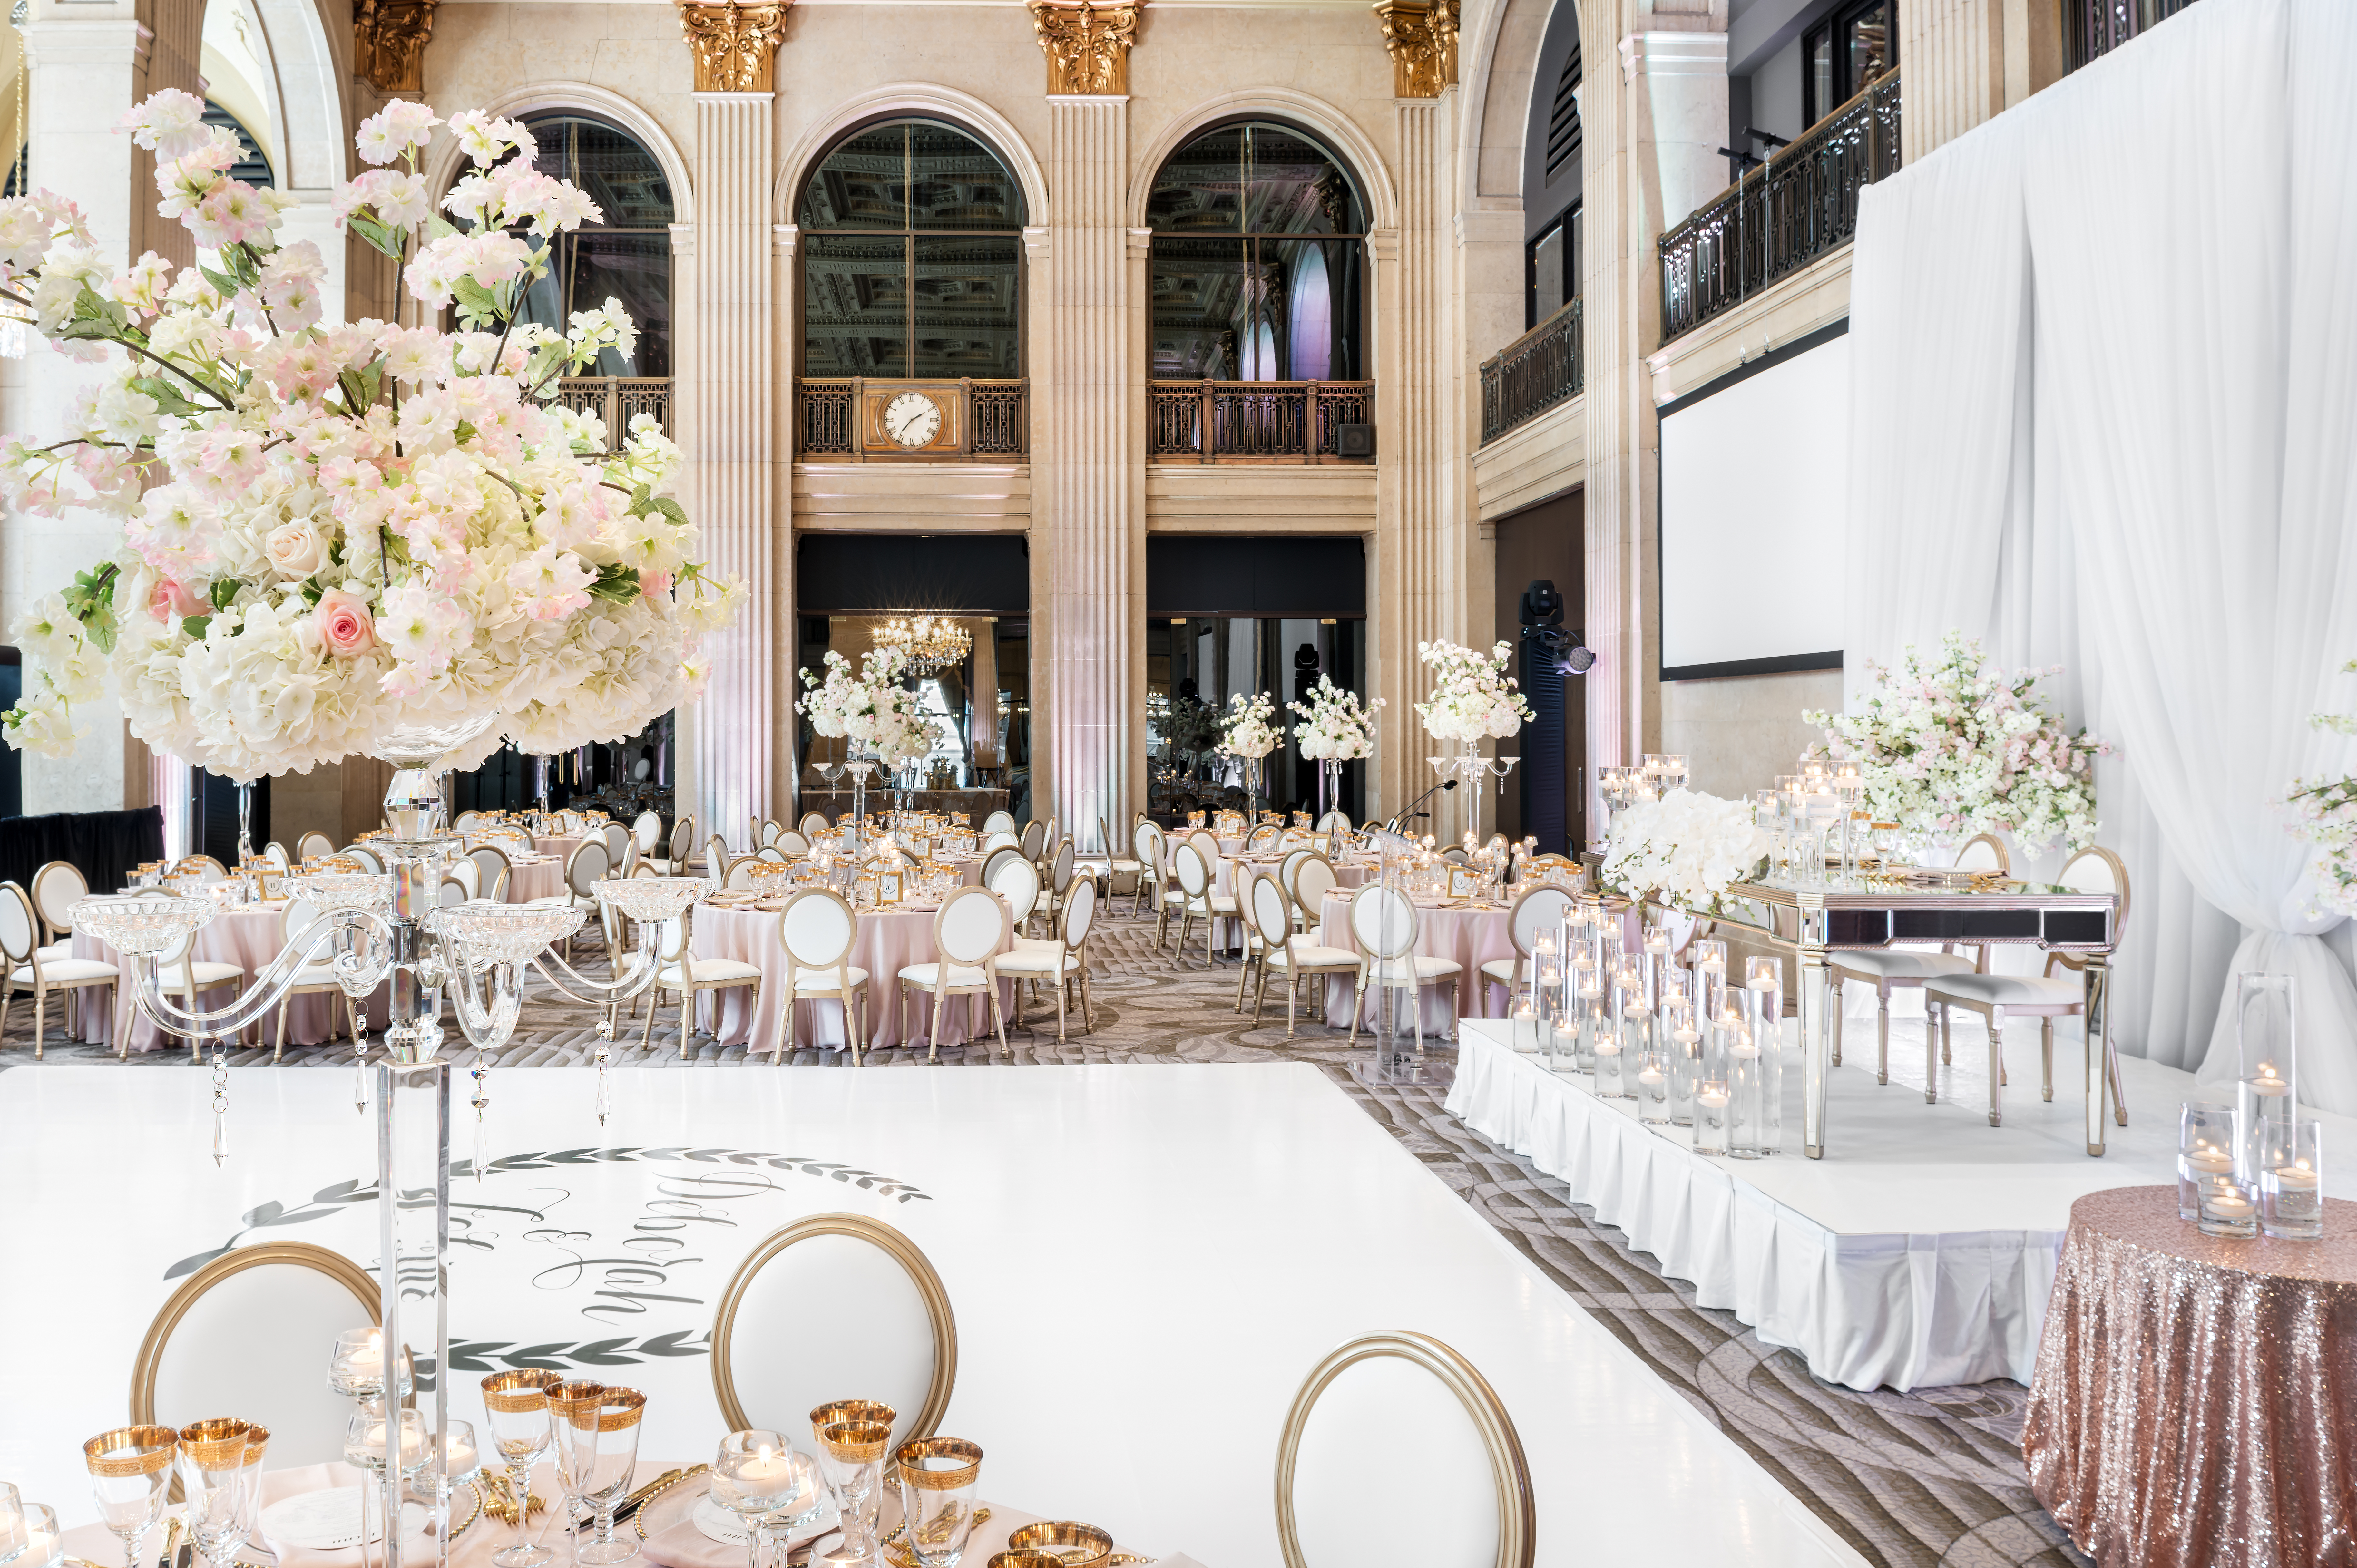 Wedding Packages One King West Hotel Residence